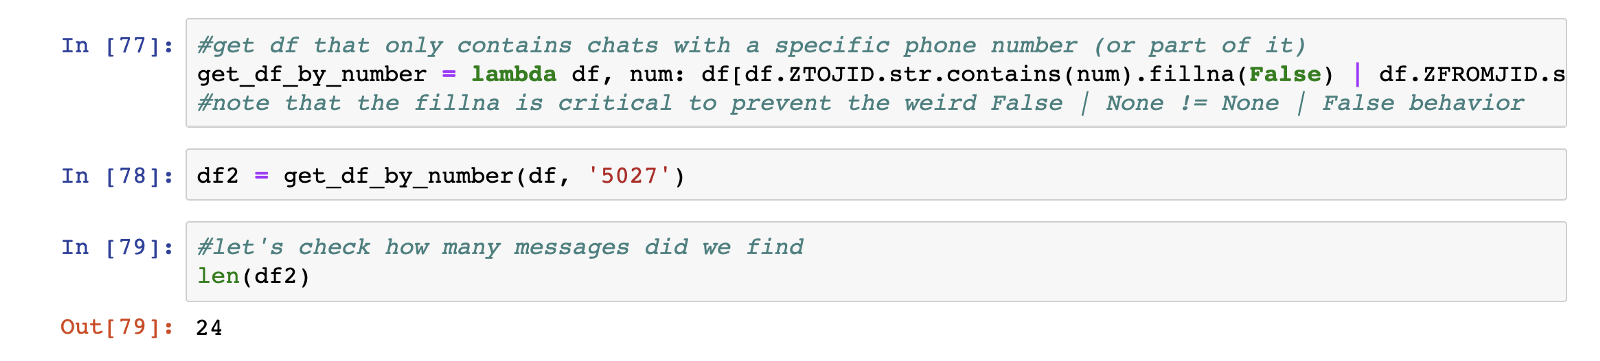 Adventures in WhatsApp DB – extracting messages from